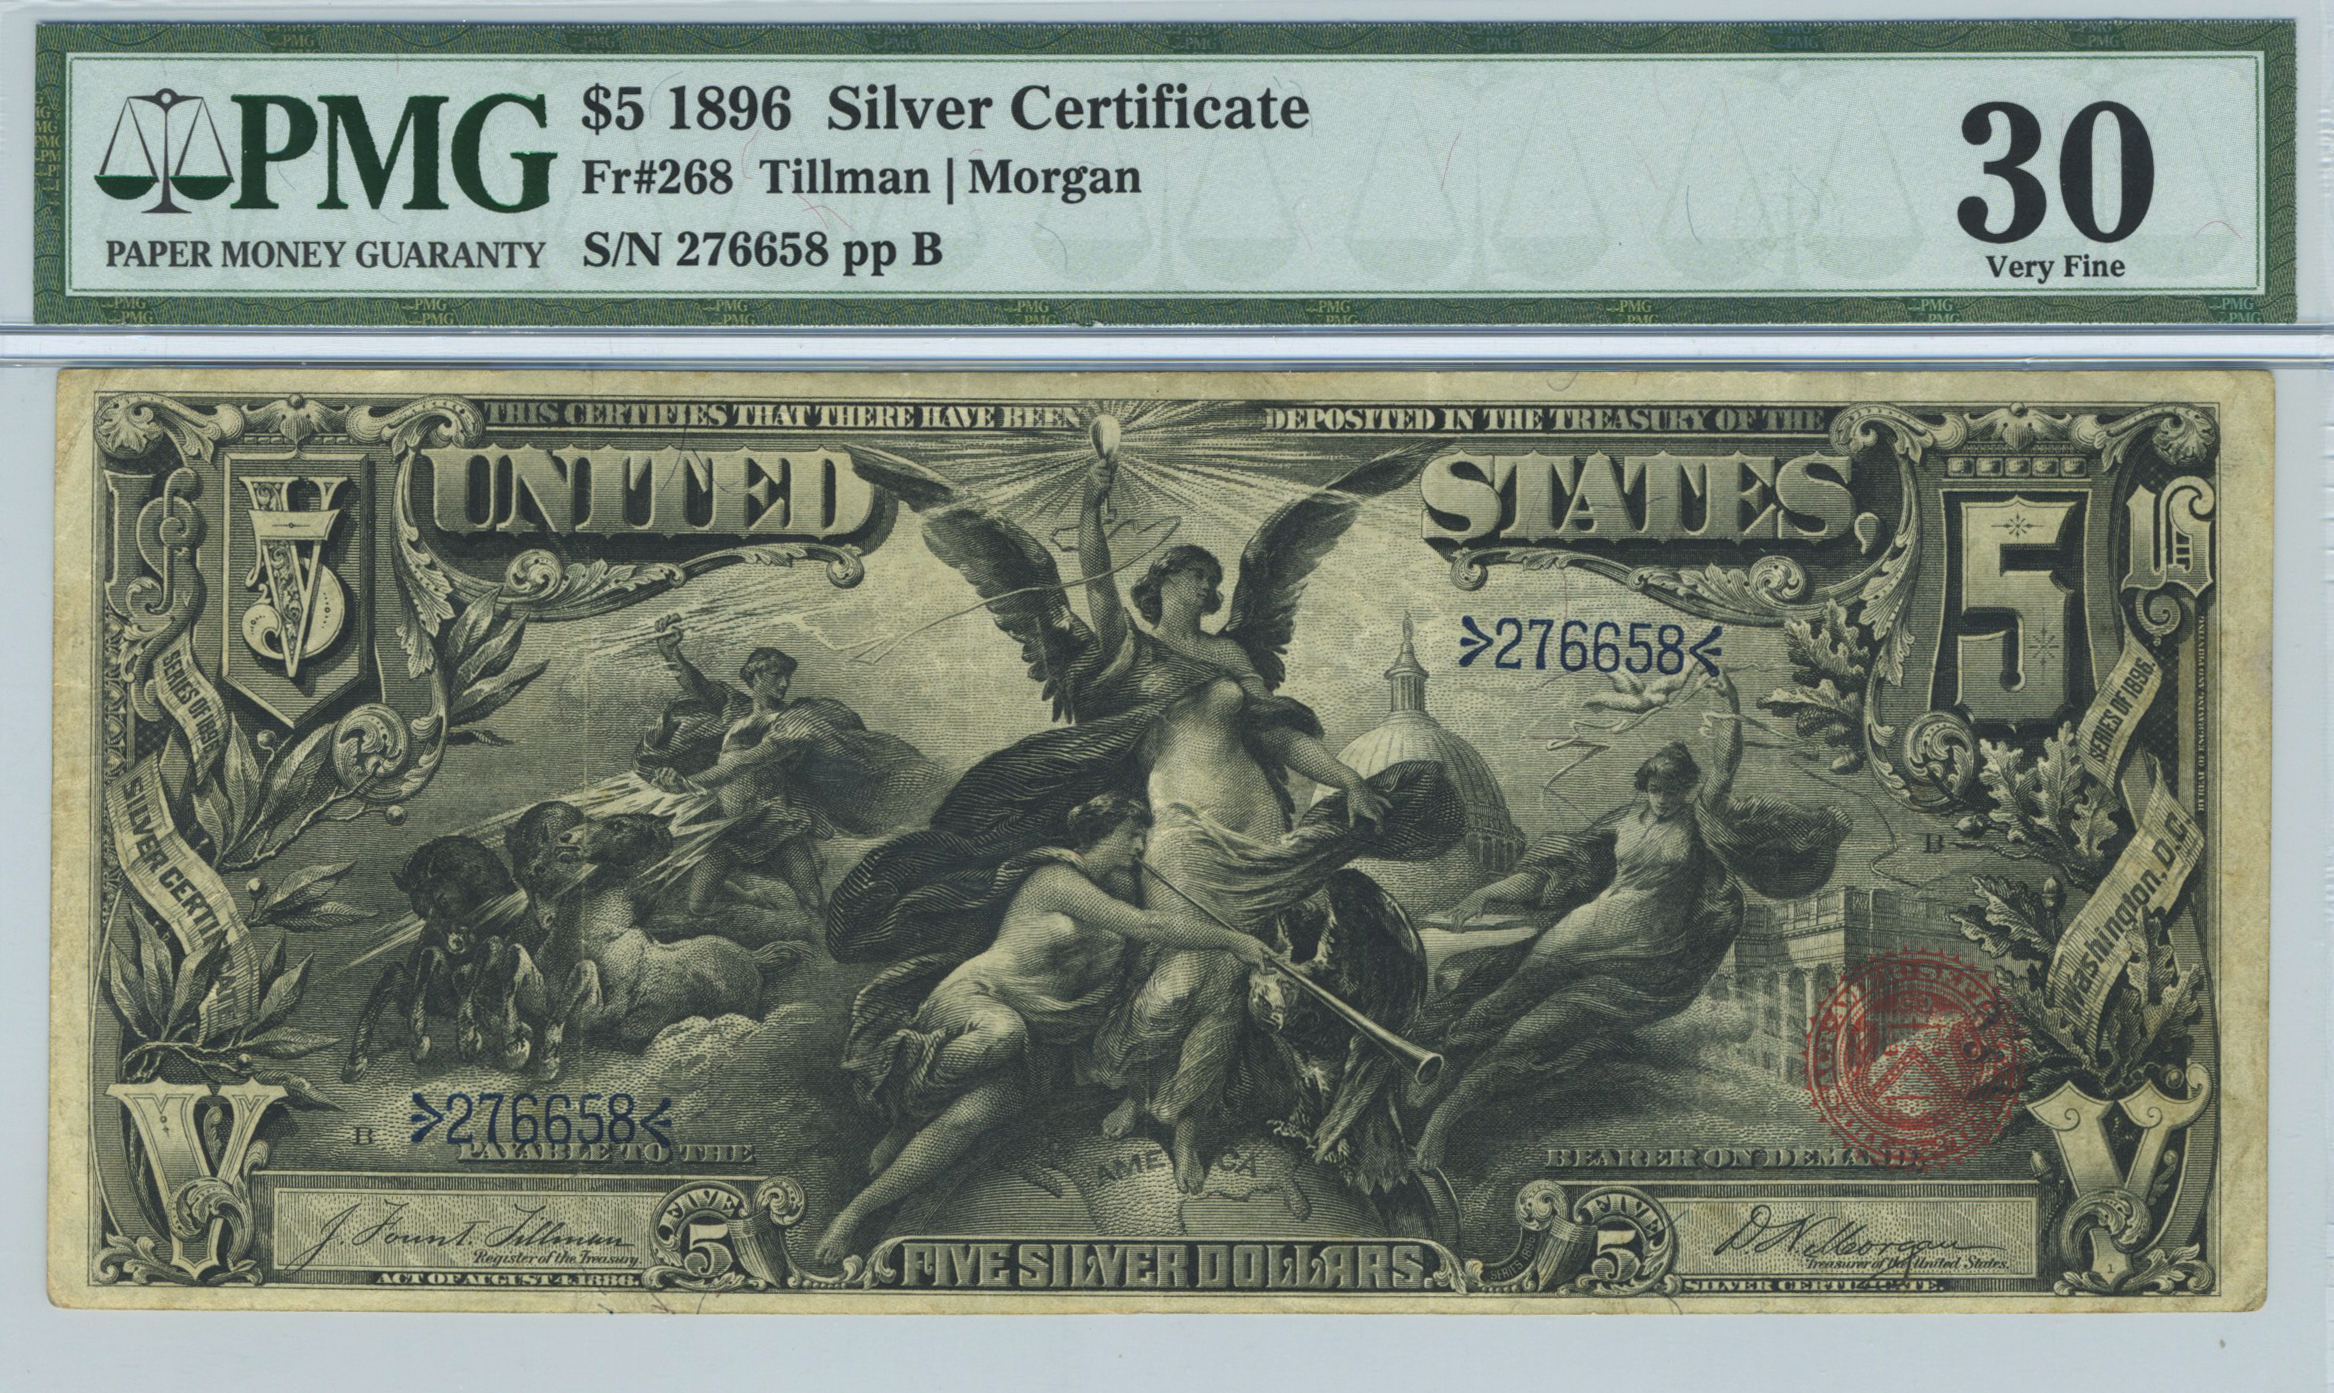 Lot 142 Fr 268 1896 5 Silver Certificate Manifest